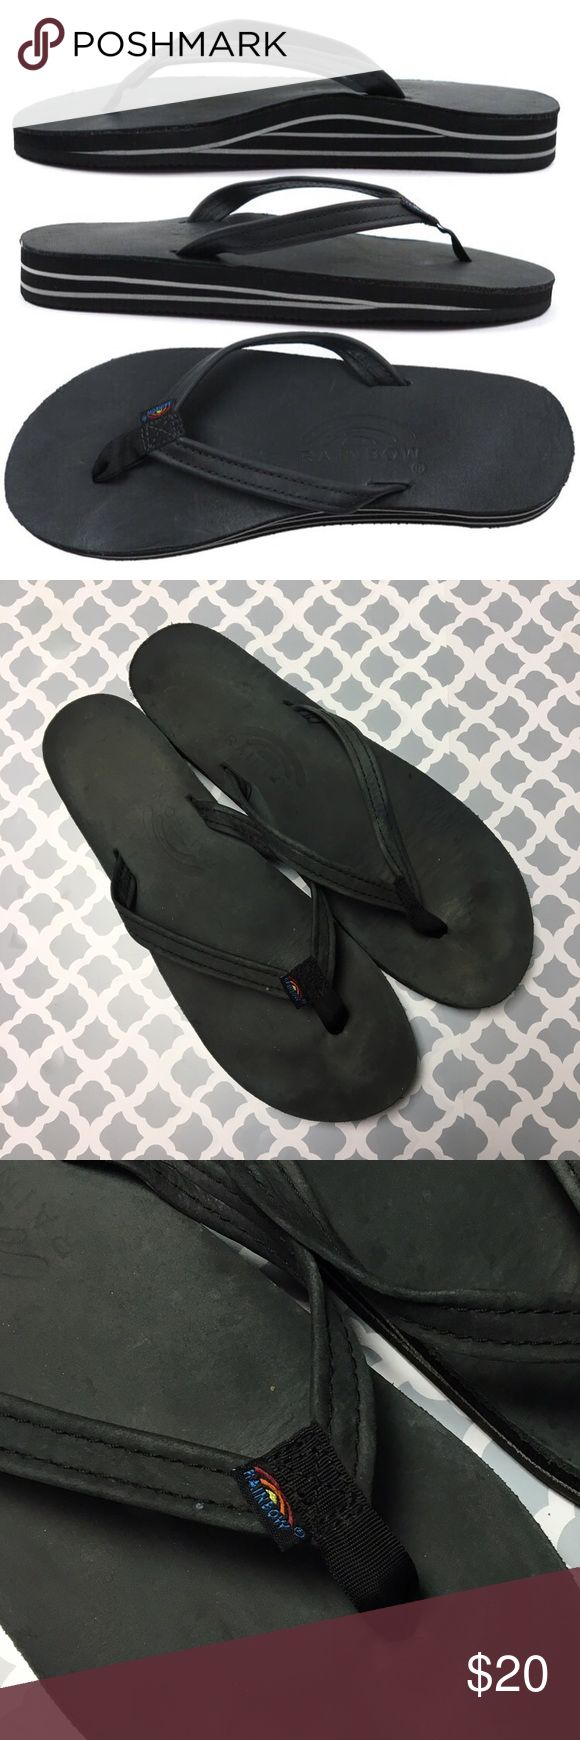 Rainbow Black Leather Flip Flops Rainbow Black Leather Flip Flops Women's size Large. Fits best size 8 or 8.5. These sandals are in excellent condition, but if you've ever owned a pair of rainbows (especially black) you understand they can look very worn after only a few good wears. These have been worn maybe 10 times so do not be alarmed: they have lots and lots of wear left in them!! Rainbow Shoes Sandals